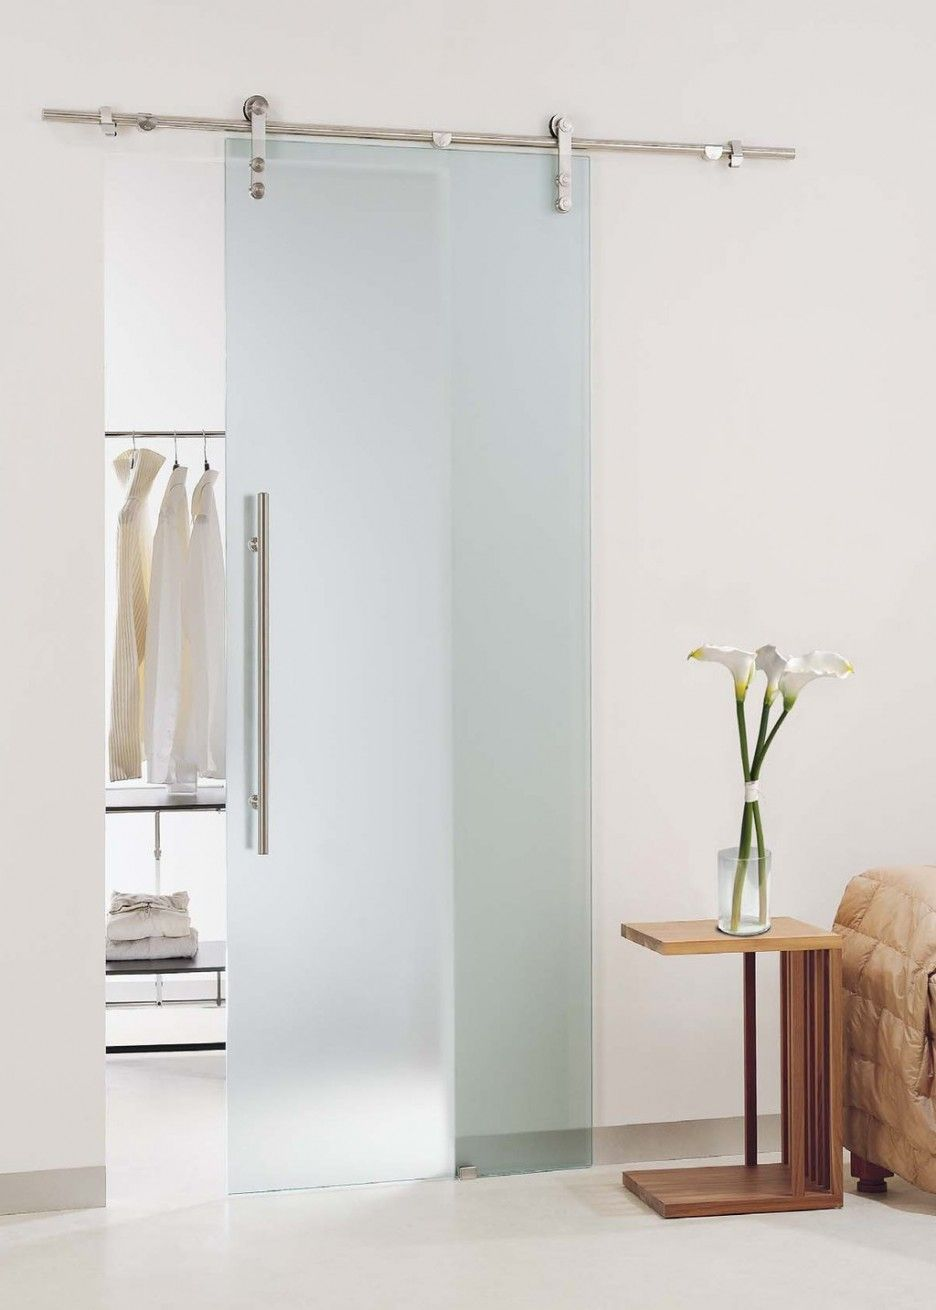 Exquisite Frameless Sliding Glass Doors With Iron Brash Handgrip And Stainless Steel Hang Rods Feat Double Wheel Mounted In White Wall For Top Hanging Sliding Doors Inspiration. The room is like no door for using the transparent glass door without a frame. Very interesting. but you should notice is sure to install these doors are appropriate and safe for the whole family.